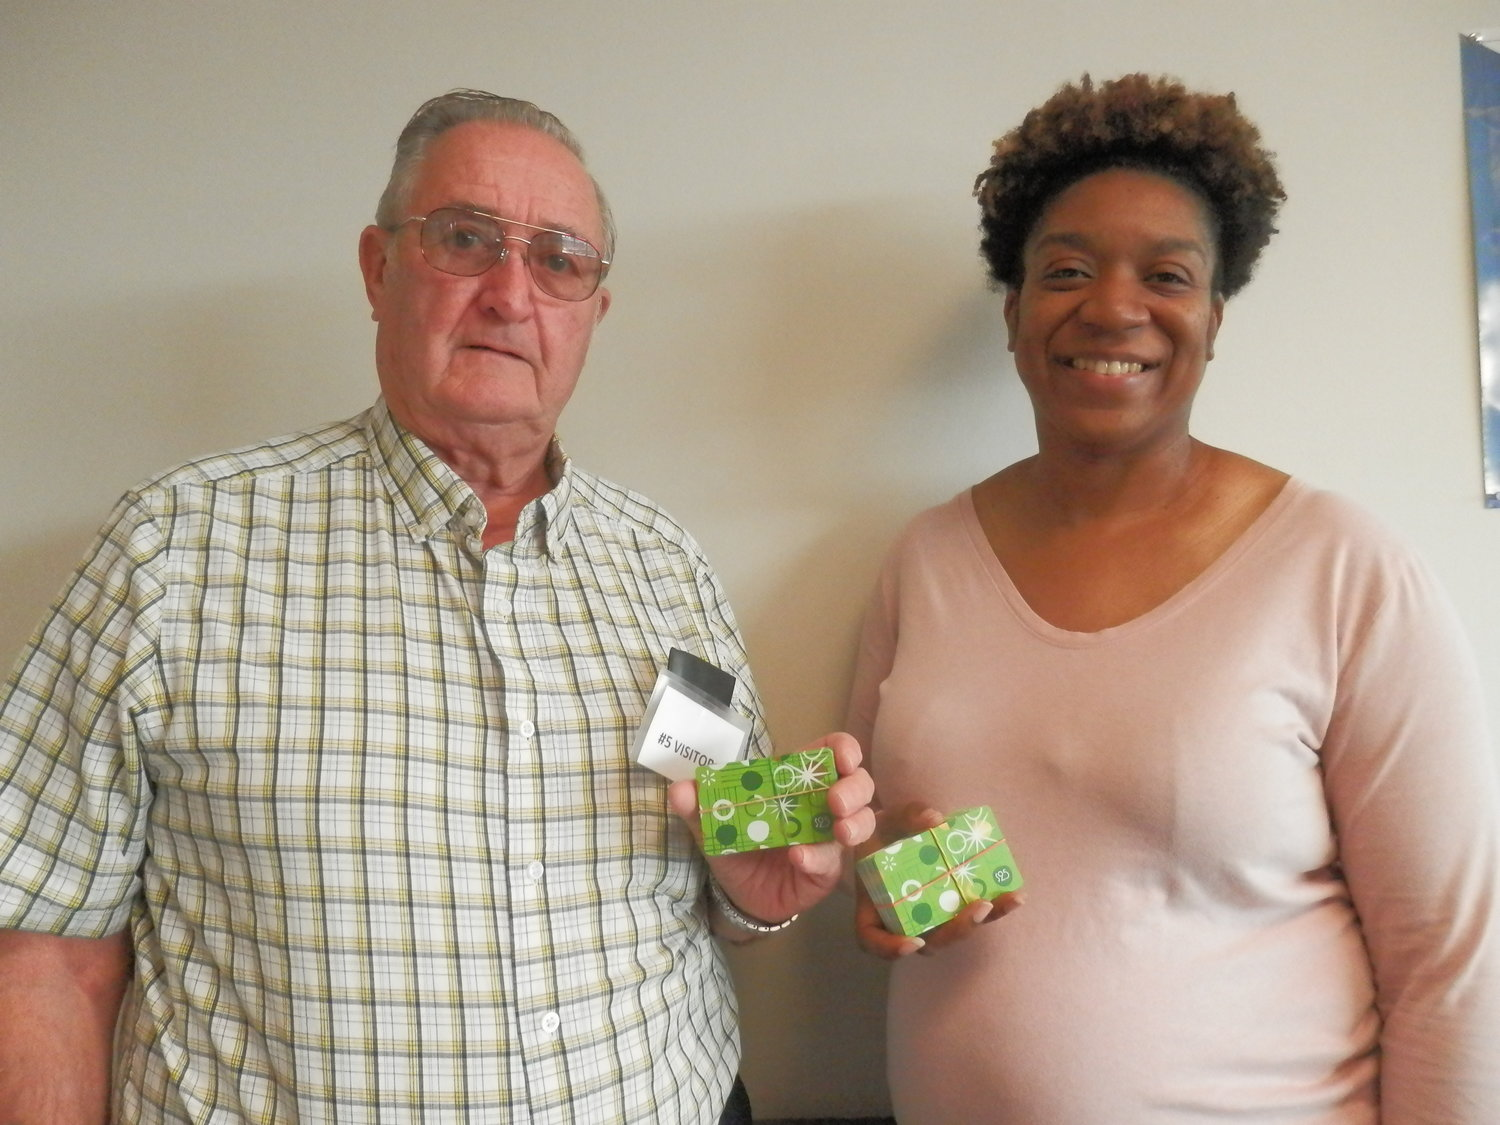 Gary Durgin, Wisconsin Sno-birds, delivers Walmart gift cards to Erica Hall, Supervisor Baldwin County Dept. of Human Resources Office of Child Welfare.